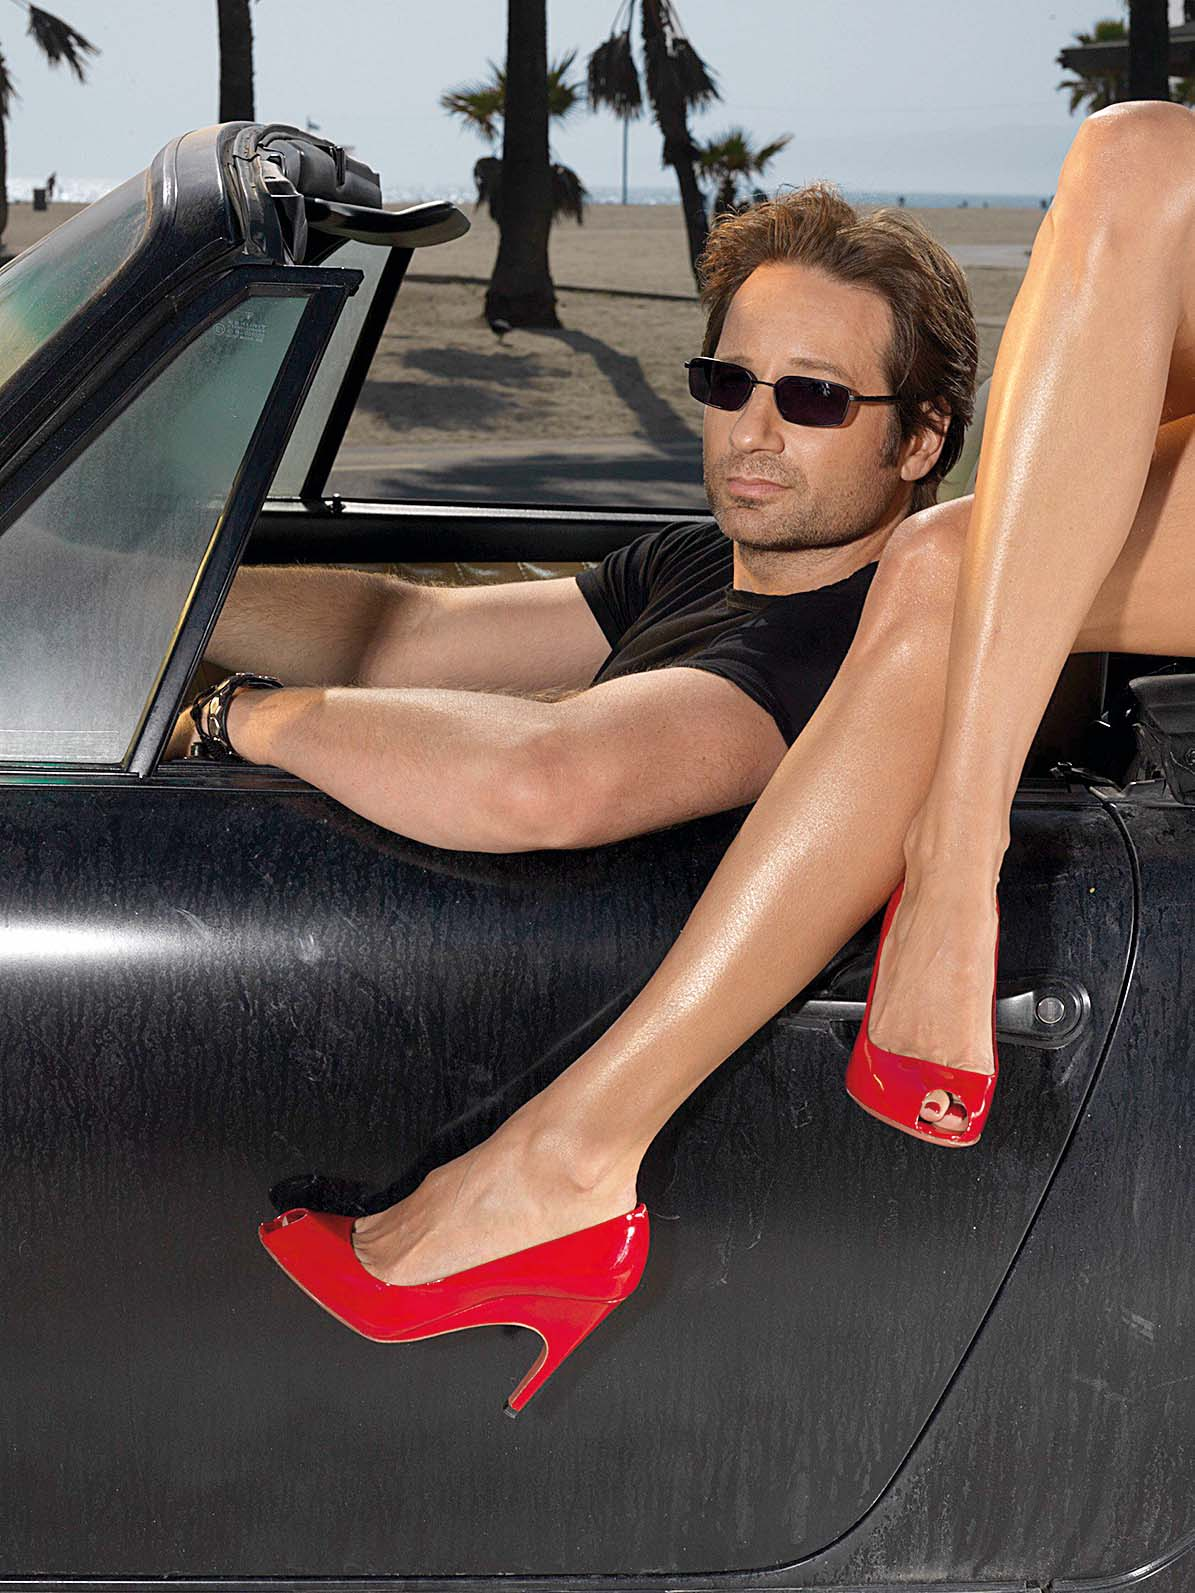 David Duchovny is Hank Moody in TV serie Californication : created by Tom Kapinos (2007) starring David Duchovny, Natascha McElhone, Evan Handler; Comédie; Comedy; Drame; drama; Crime; Policier; television; serie internationnal; american; saison 1; Showtime Networks; 2007 NOTE: this is a PR photo. Sunsetbox does not claim any Copyright or License in the attached material. Fees charged by Sunsetbox are for Sunsetbox's services only, and do not, nor are they intended to, convey to the user any ownership of Copyright or License in the material. By publishing this material, the user expressly agrees to indemnify and to hold Sunsetbox harmless from any claims, demands, or causes of action arising out of or connected in any way with user's publication of the material, Image: 271916479, License: Rights-managed, Restrictions: , Model Release: no, Credit line: Profimedia, Allpix Press